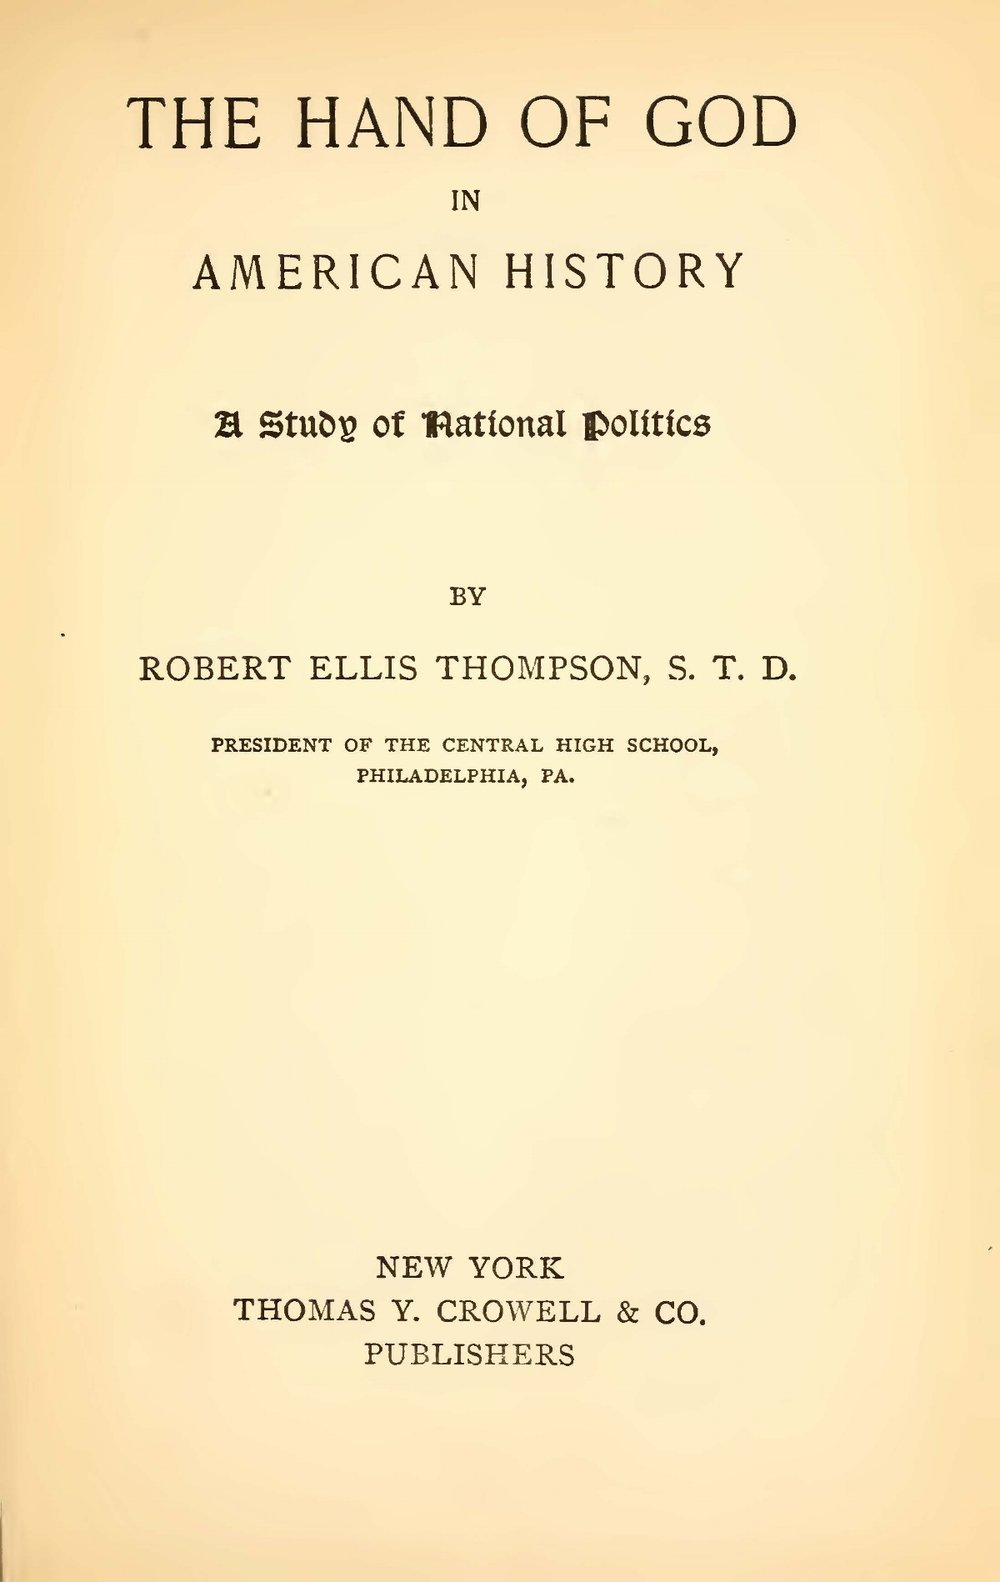 Thompson, Robert Ellis, The Hand of God in American History Title Page.jpg